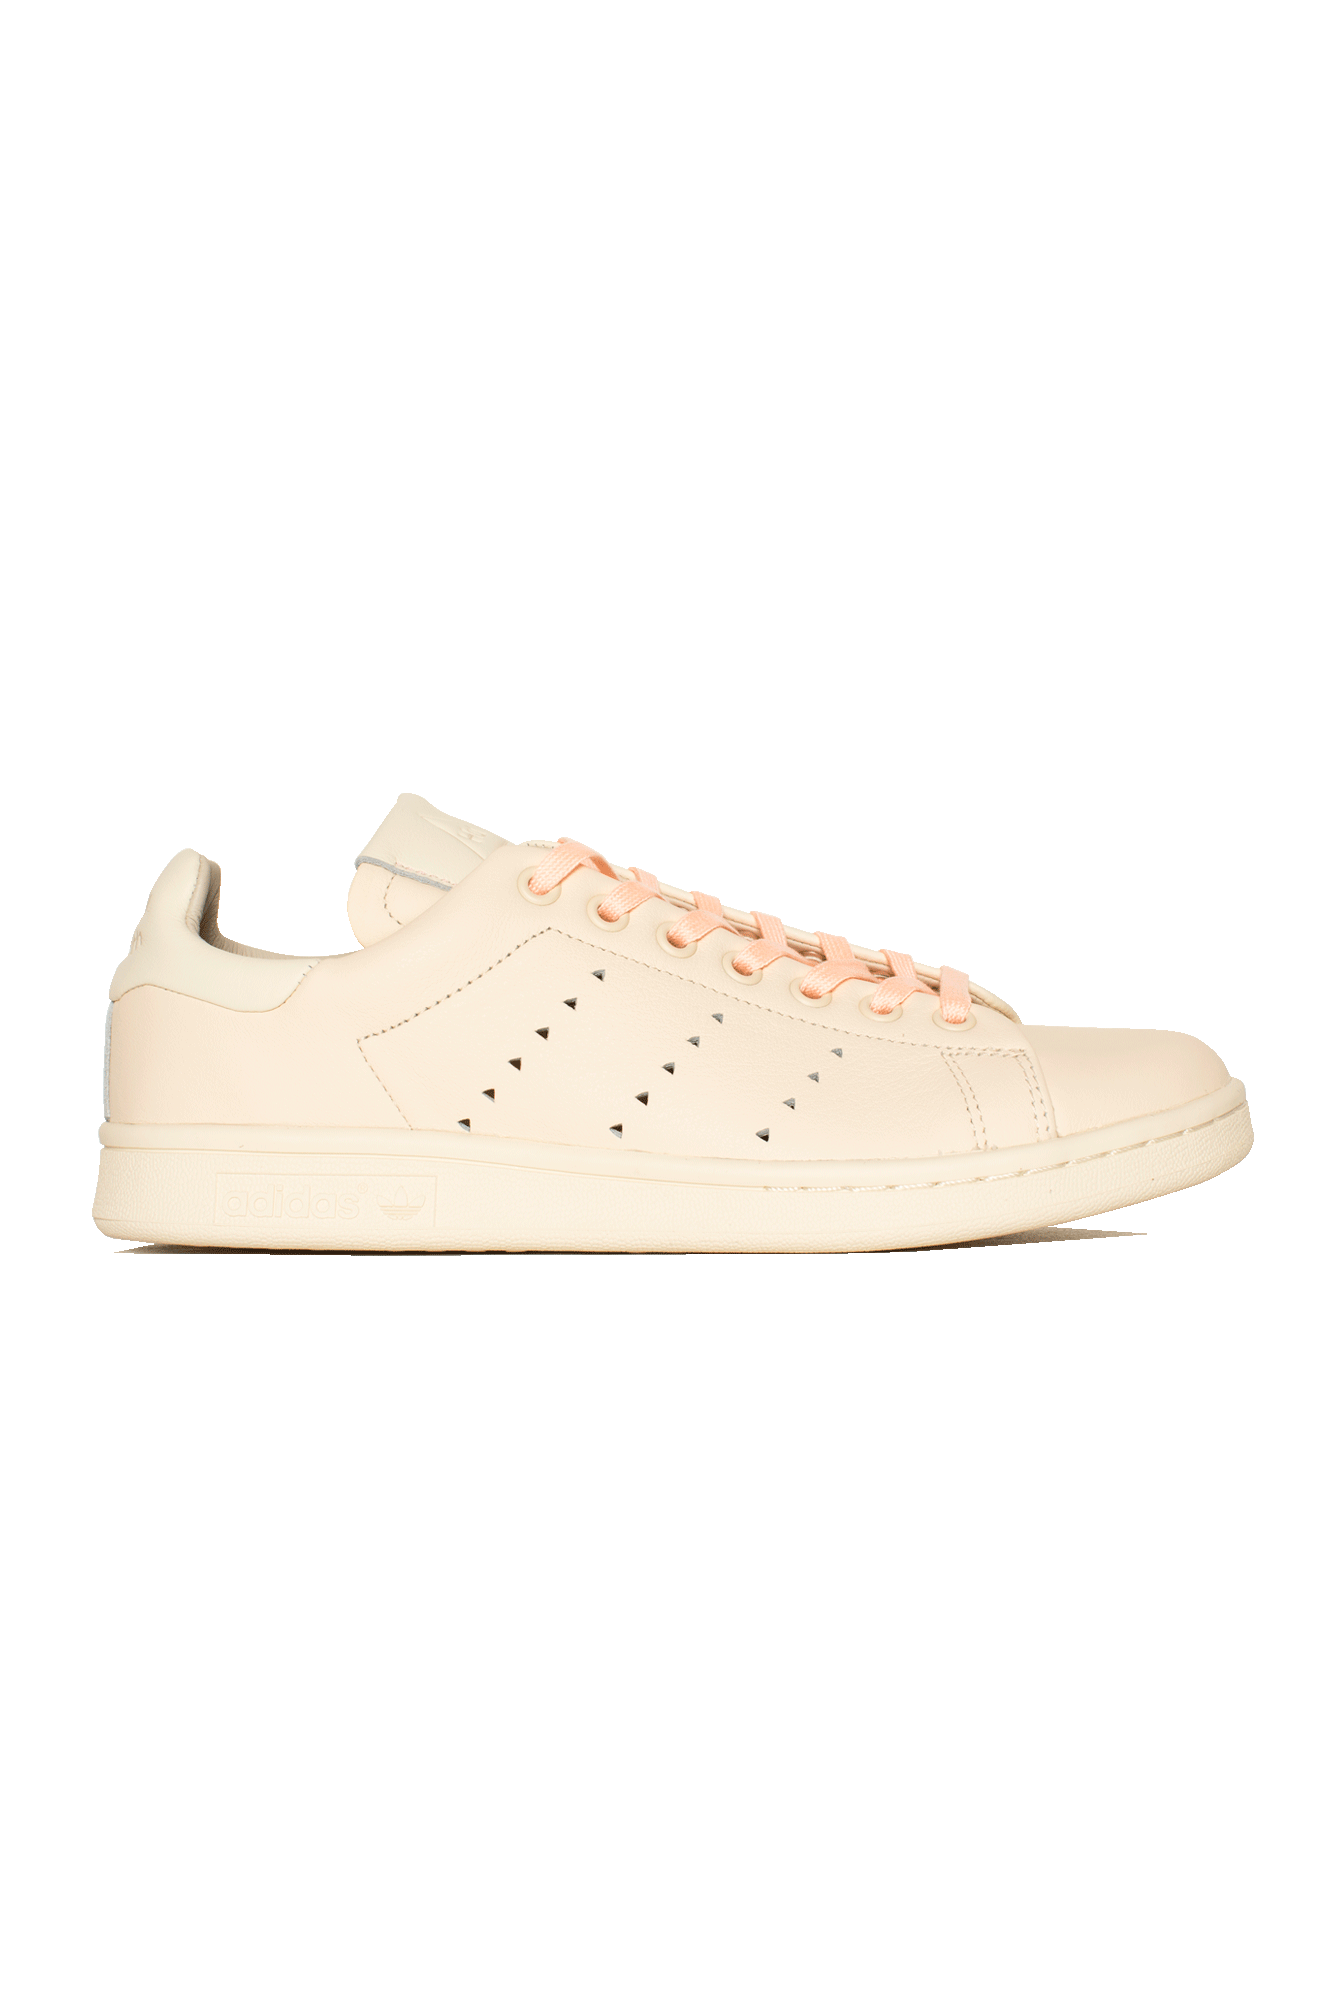 PW Stan Smith White